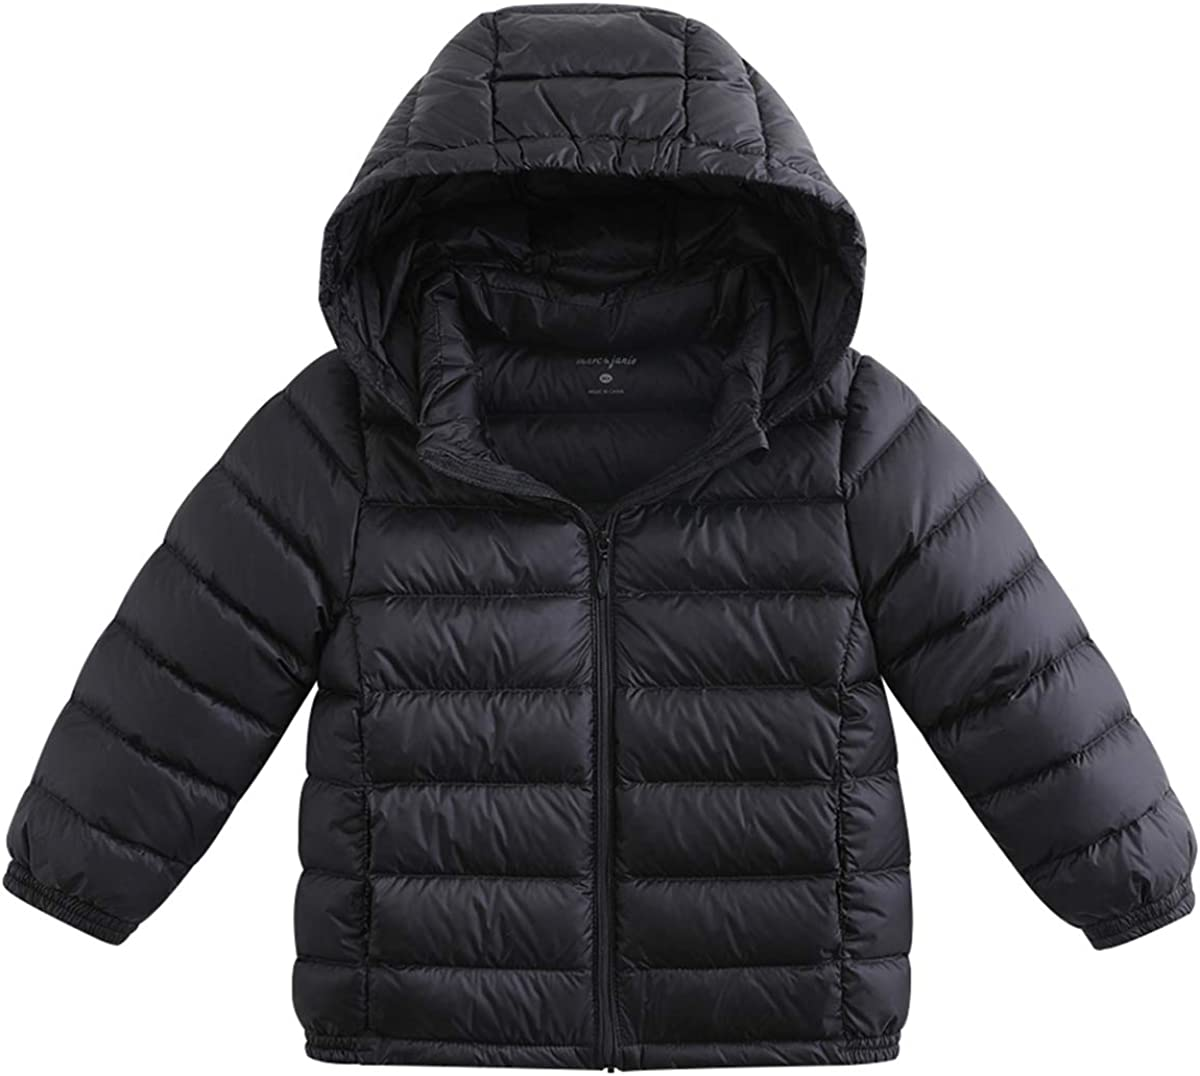 marc janie Girls Boys' Light Weight Down Jacket Kids Removable Hooded Packable Down Puffer Coat Winter Outerwear